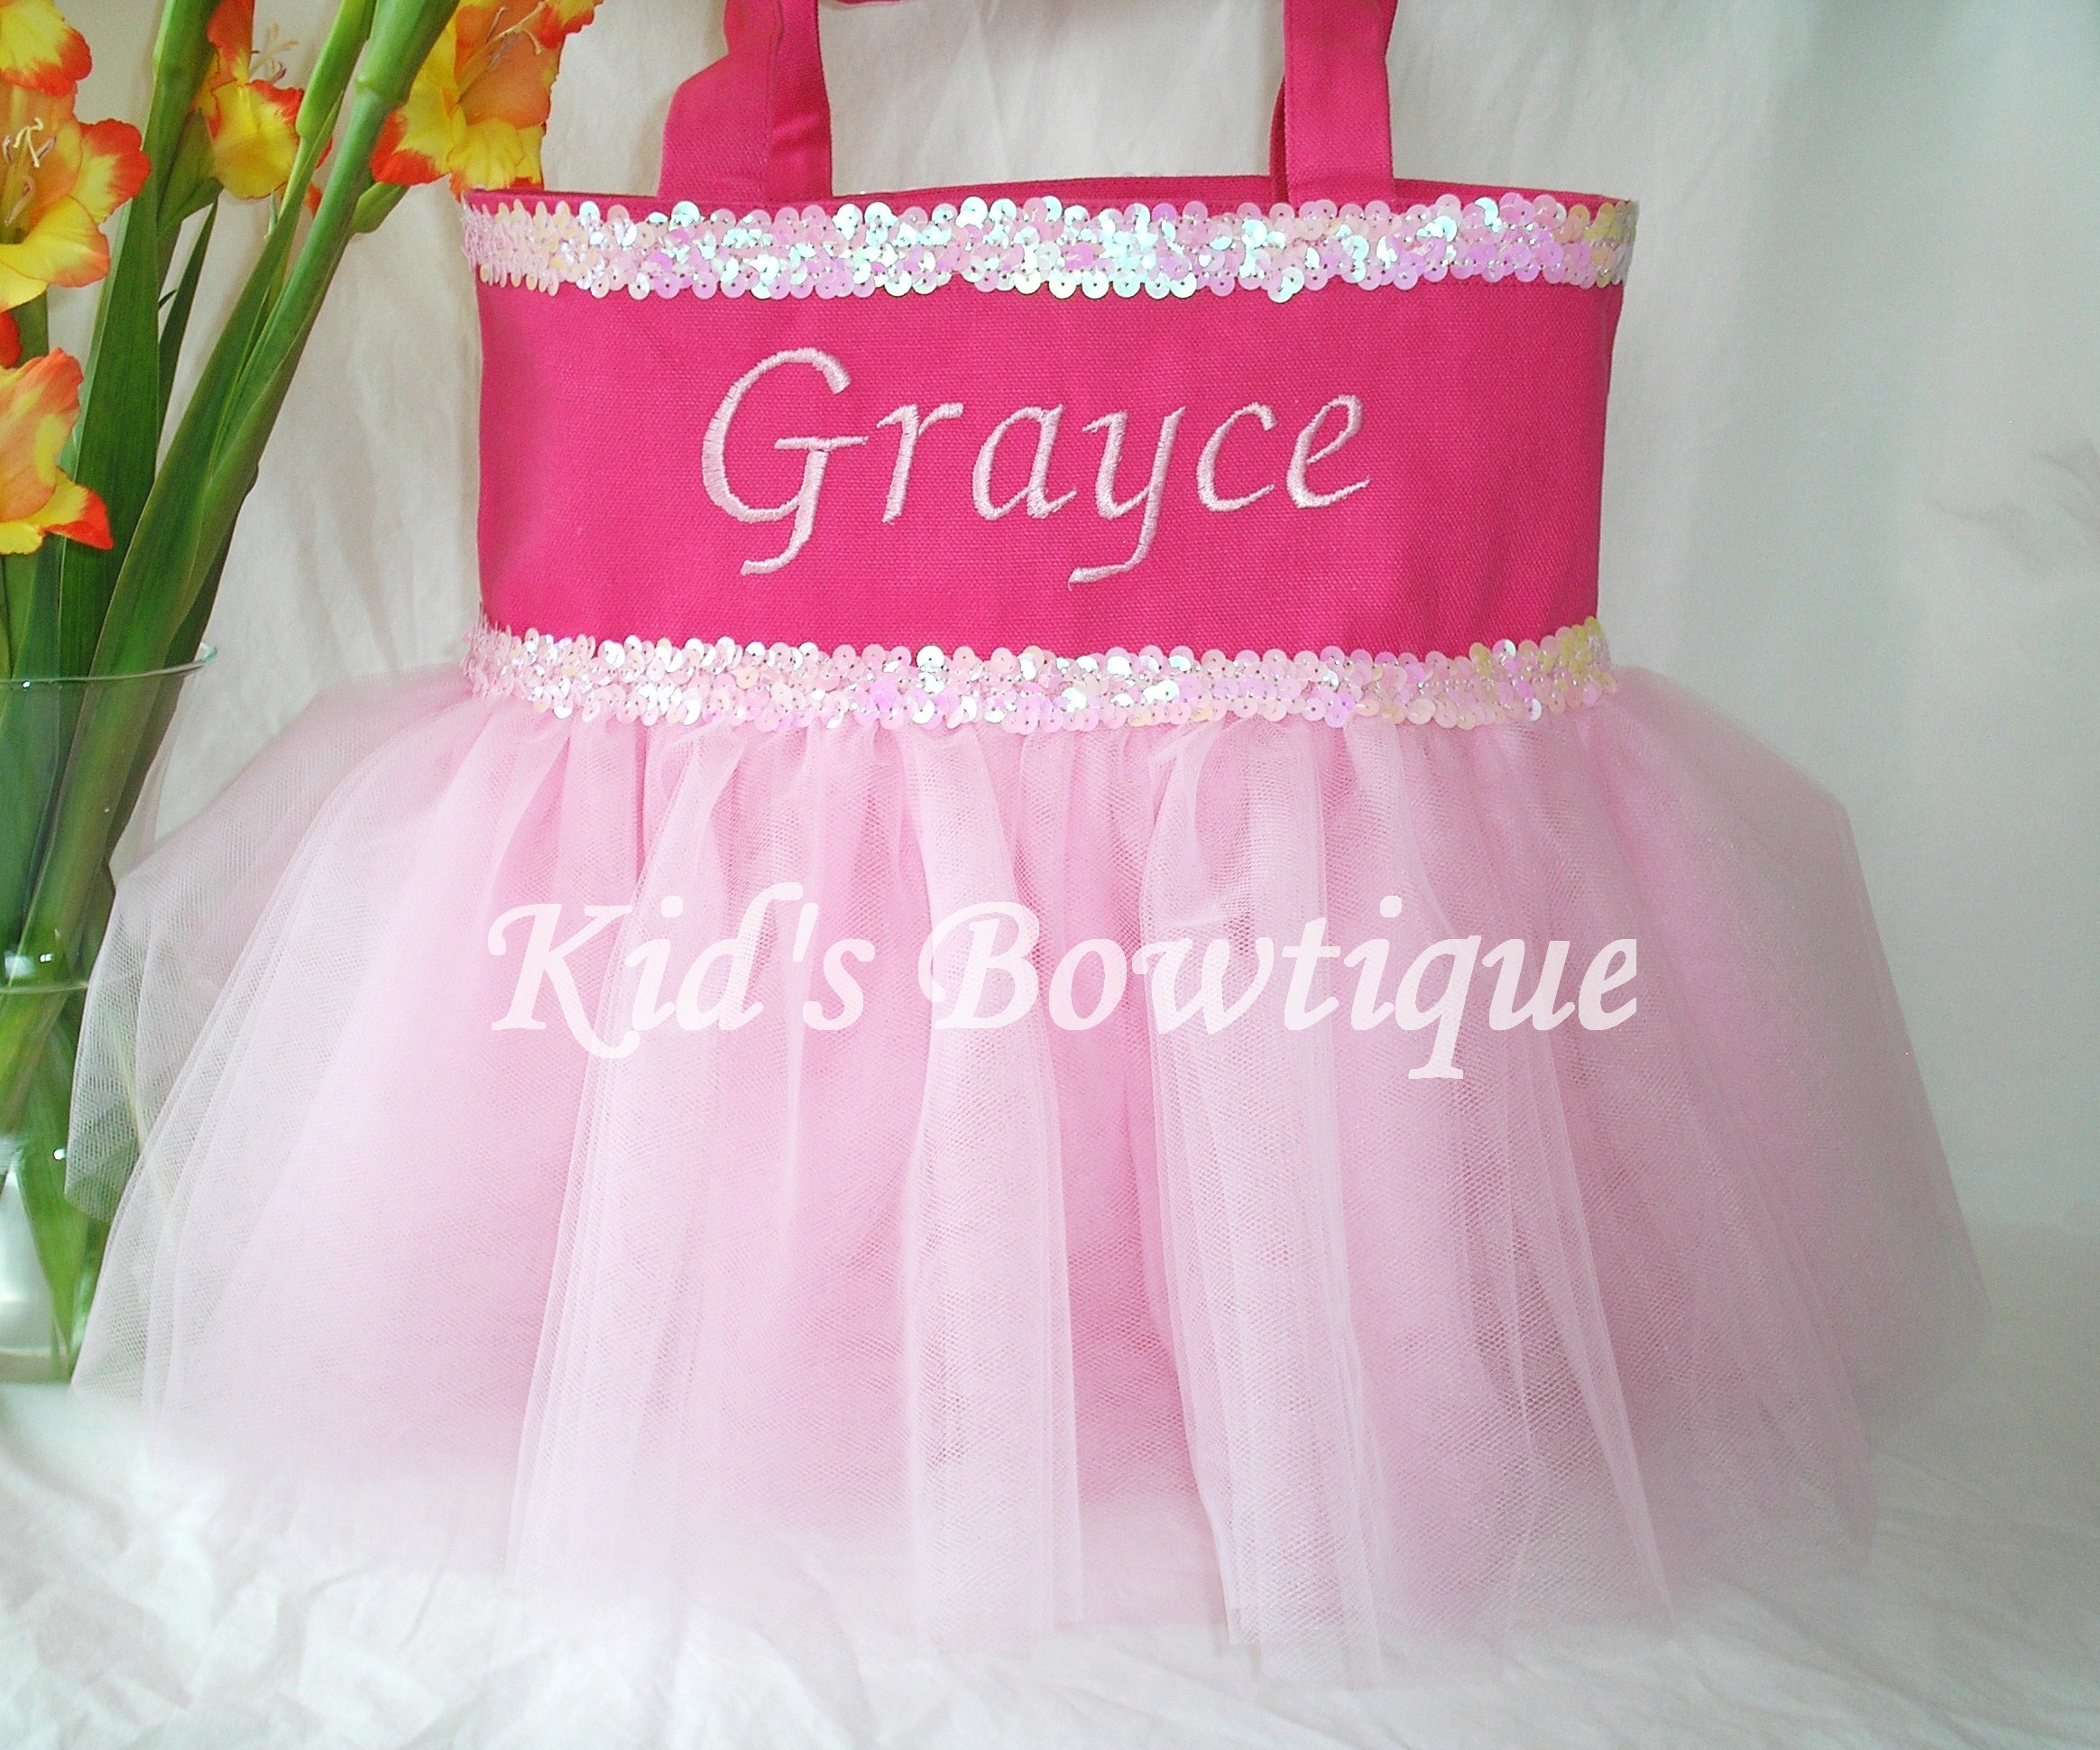 Personalized Tutu Tote Bag - ttb33 Double Pink Sequins - Ballgown SKIRT